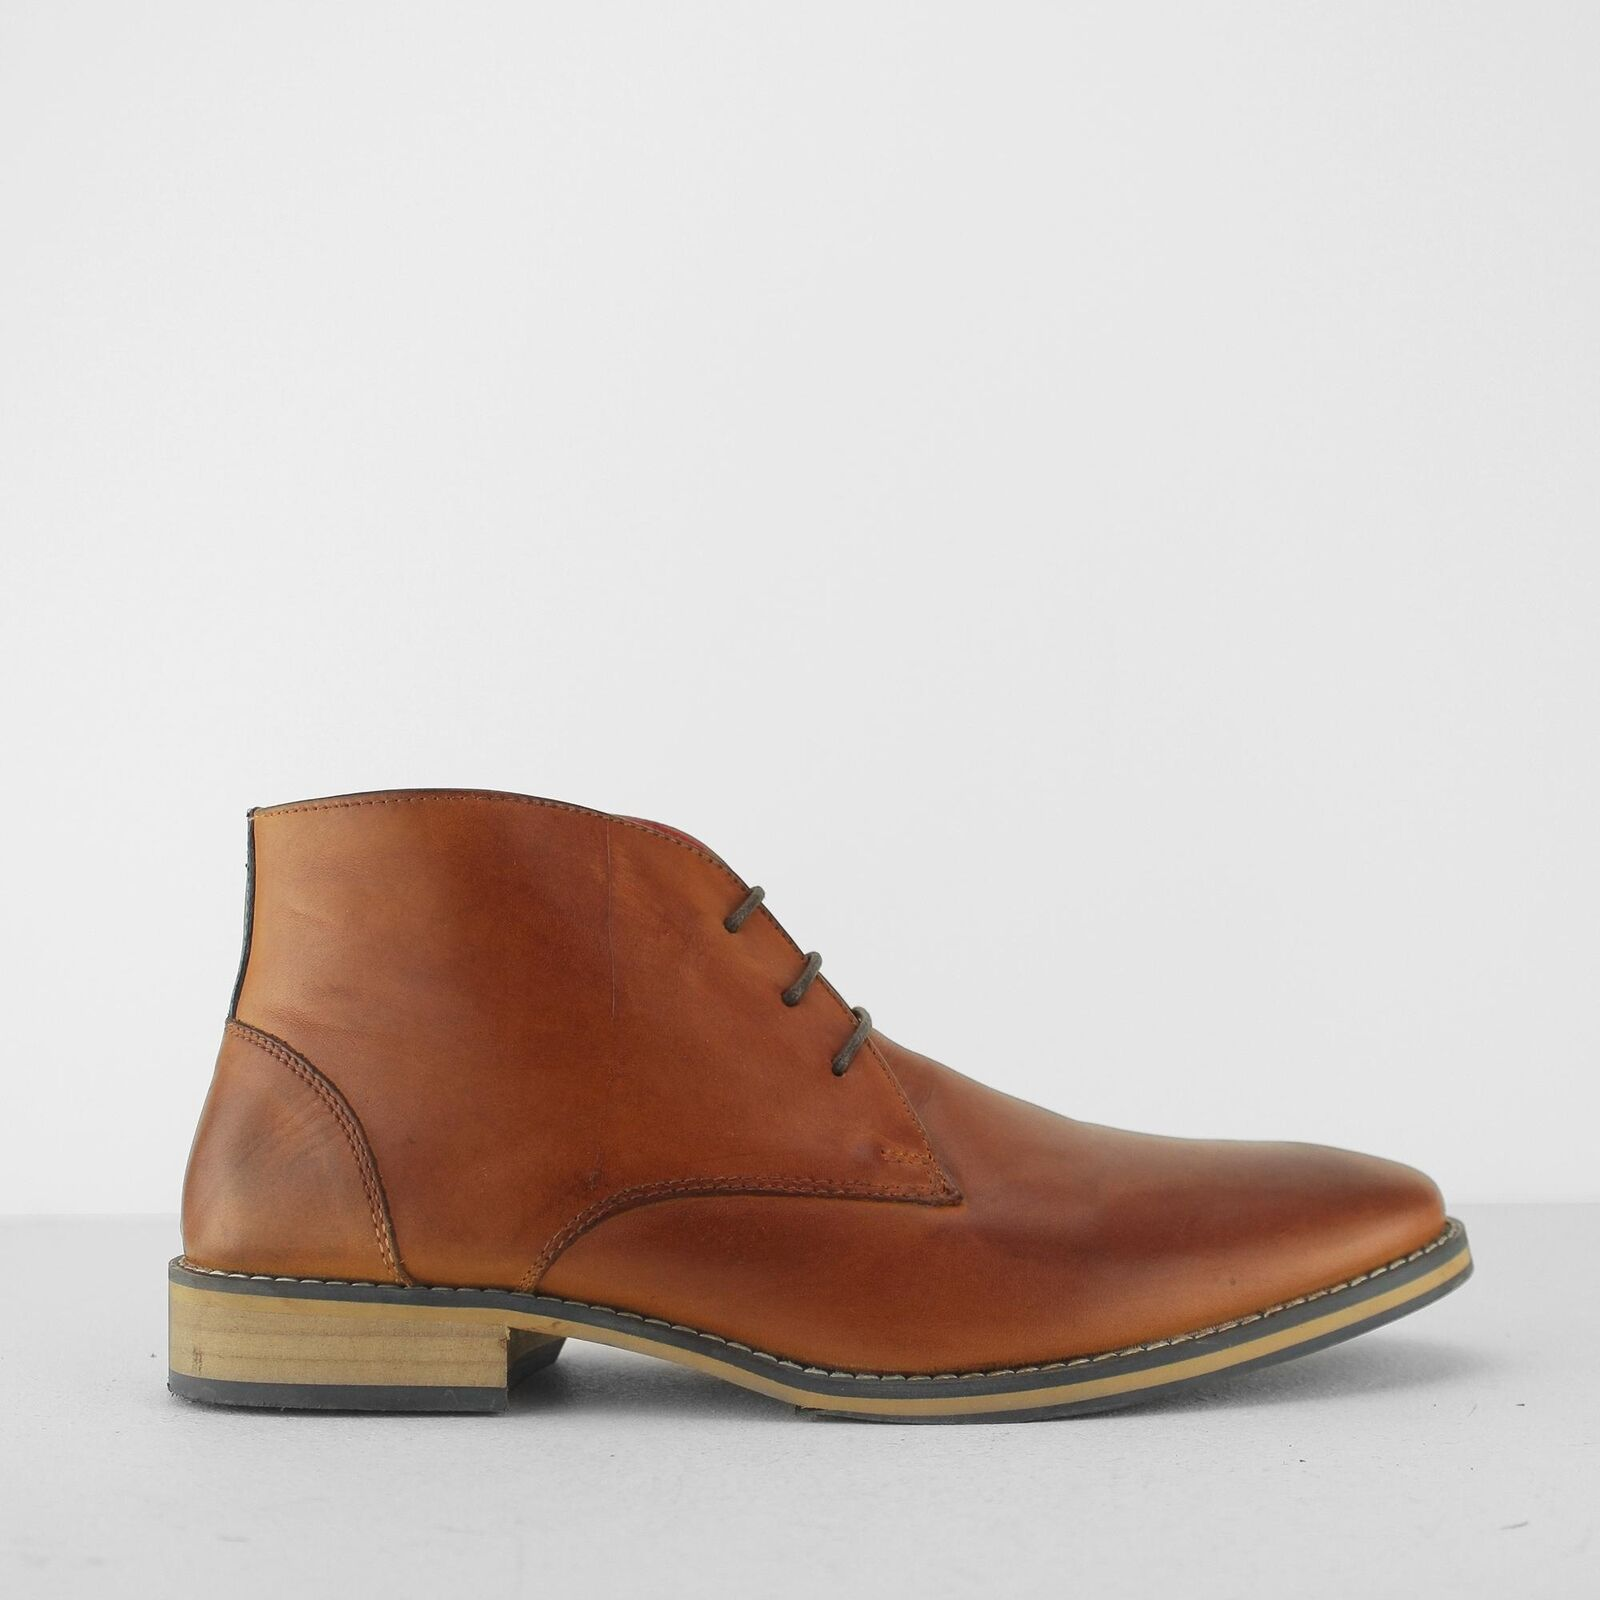 Front LOGAN Mens Smart Casual Smooth Leather Burnished Lace Up Chukka Boots Tan